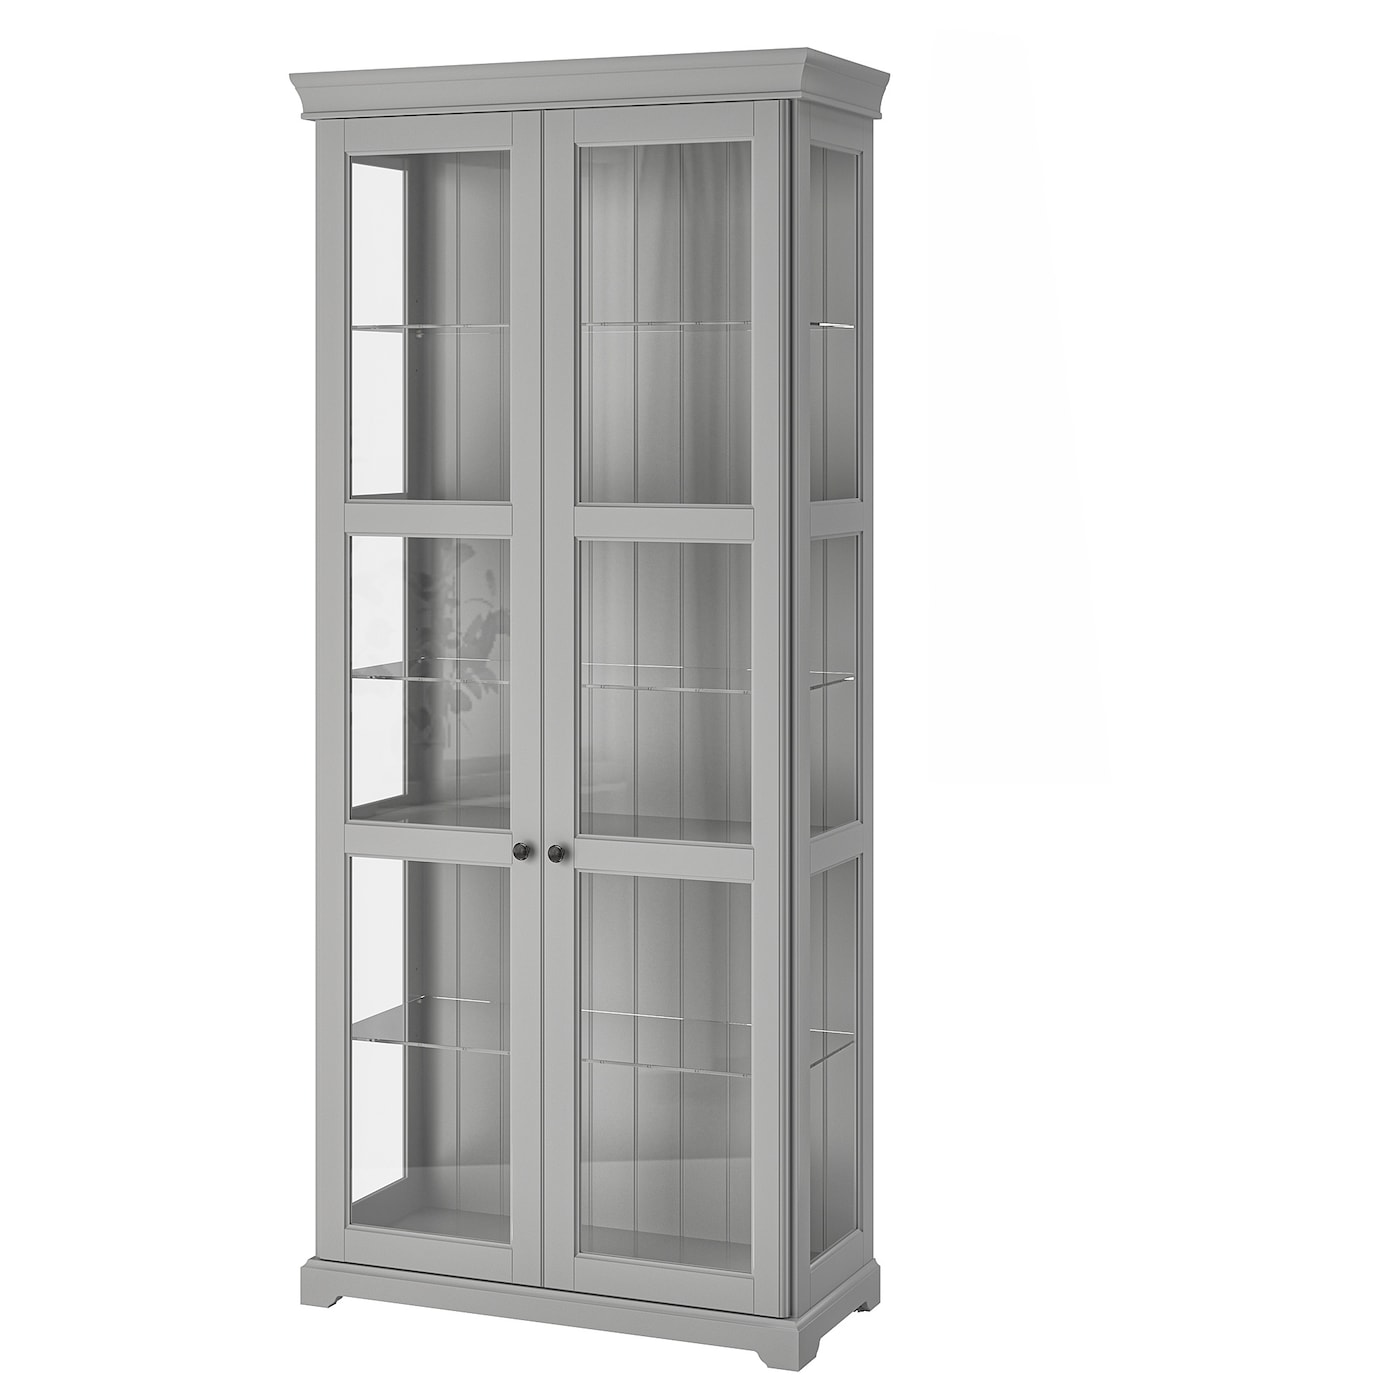 IKEA LIATORP glass-door cabinet 2 fixed shelves for high stability.